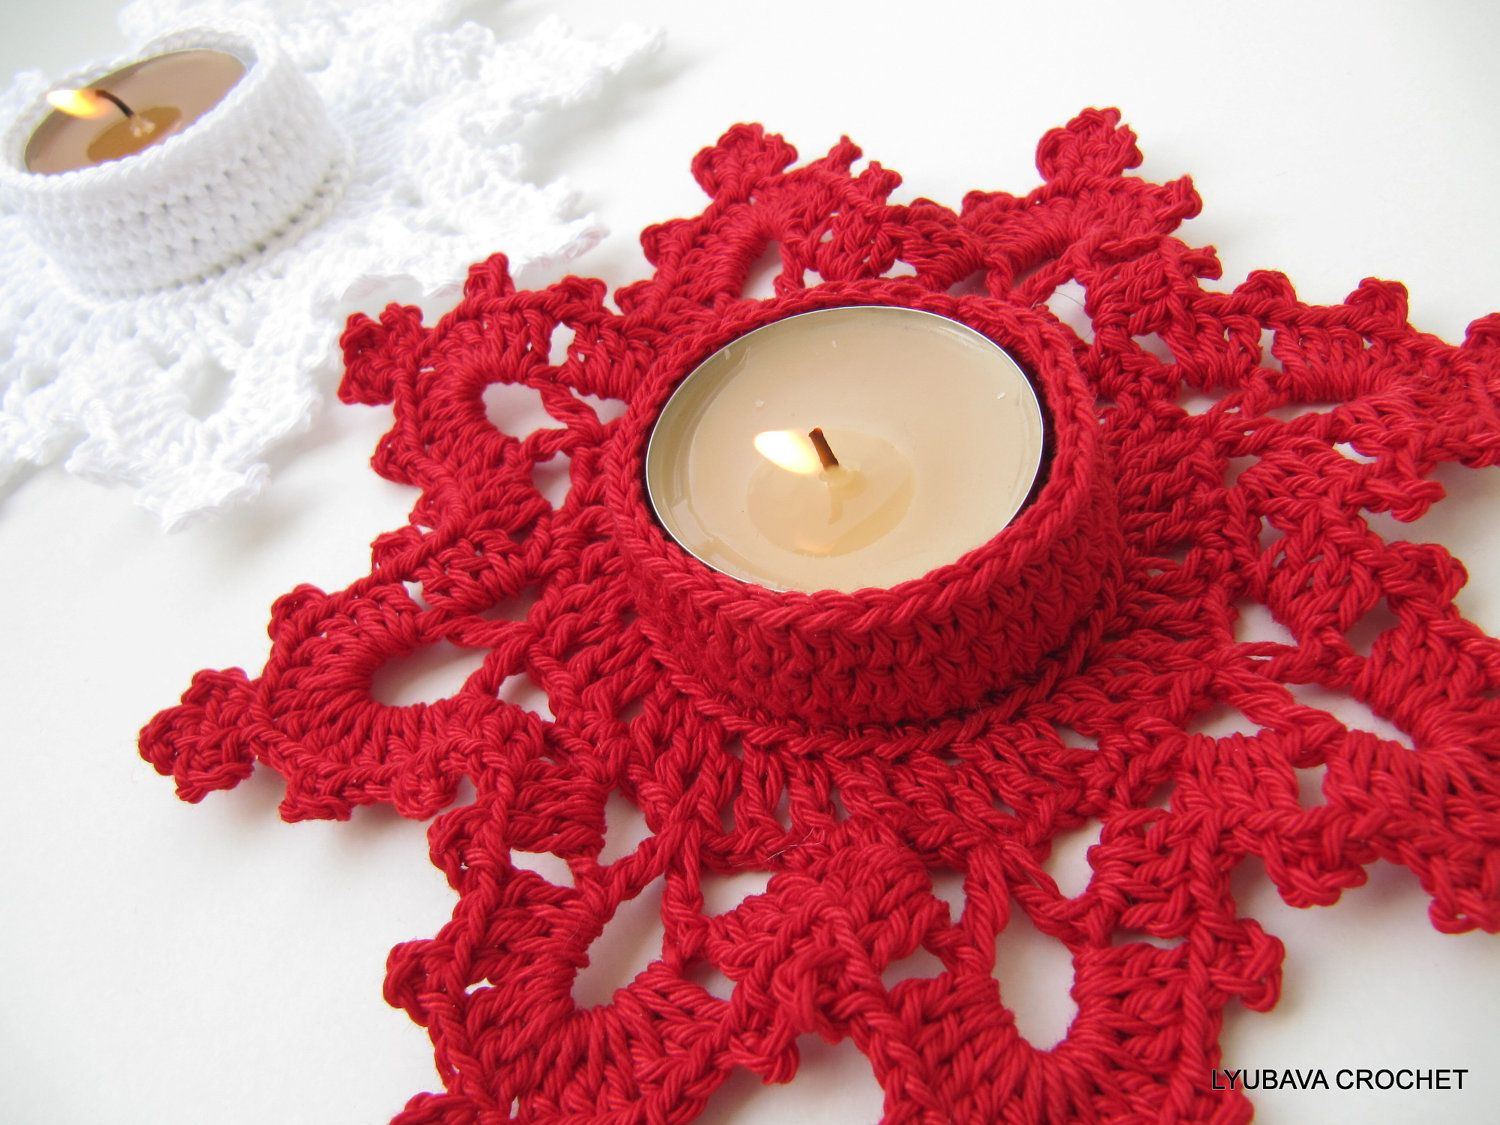 Crochet candle holder melting snowflake turorial crochet pattern crochet candle holder melting snowflake turorial crochet pattern pdf christmas bankloansurffo Image collections